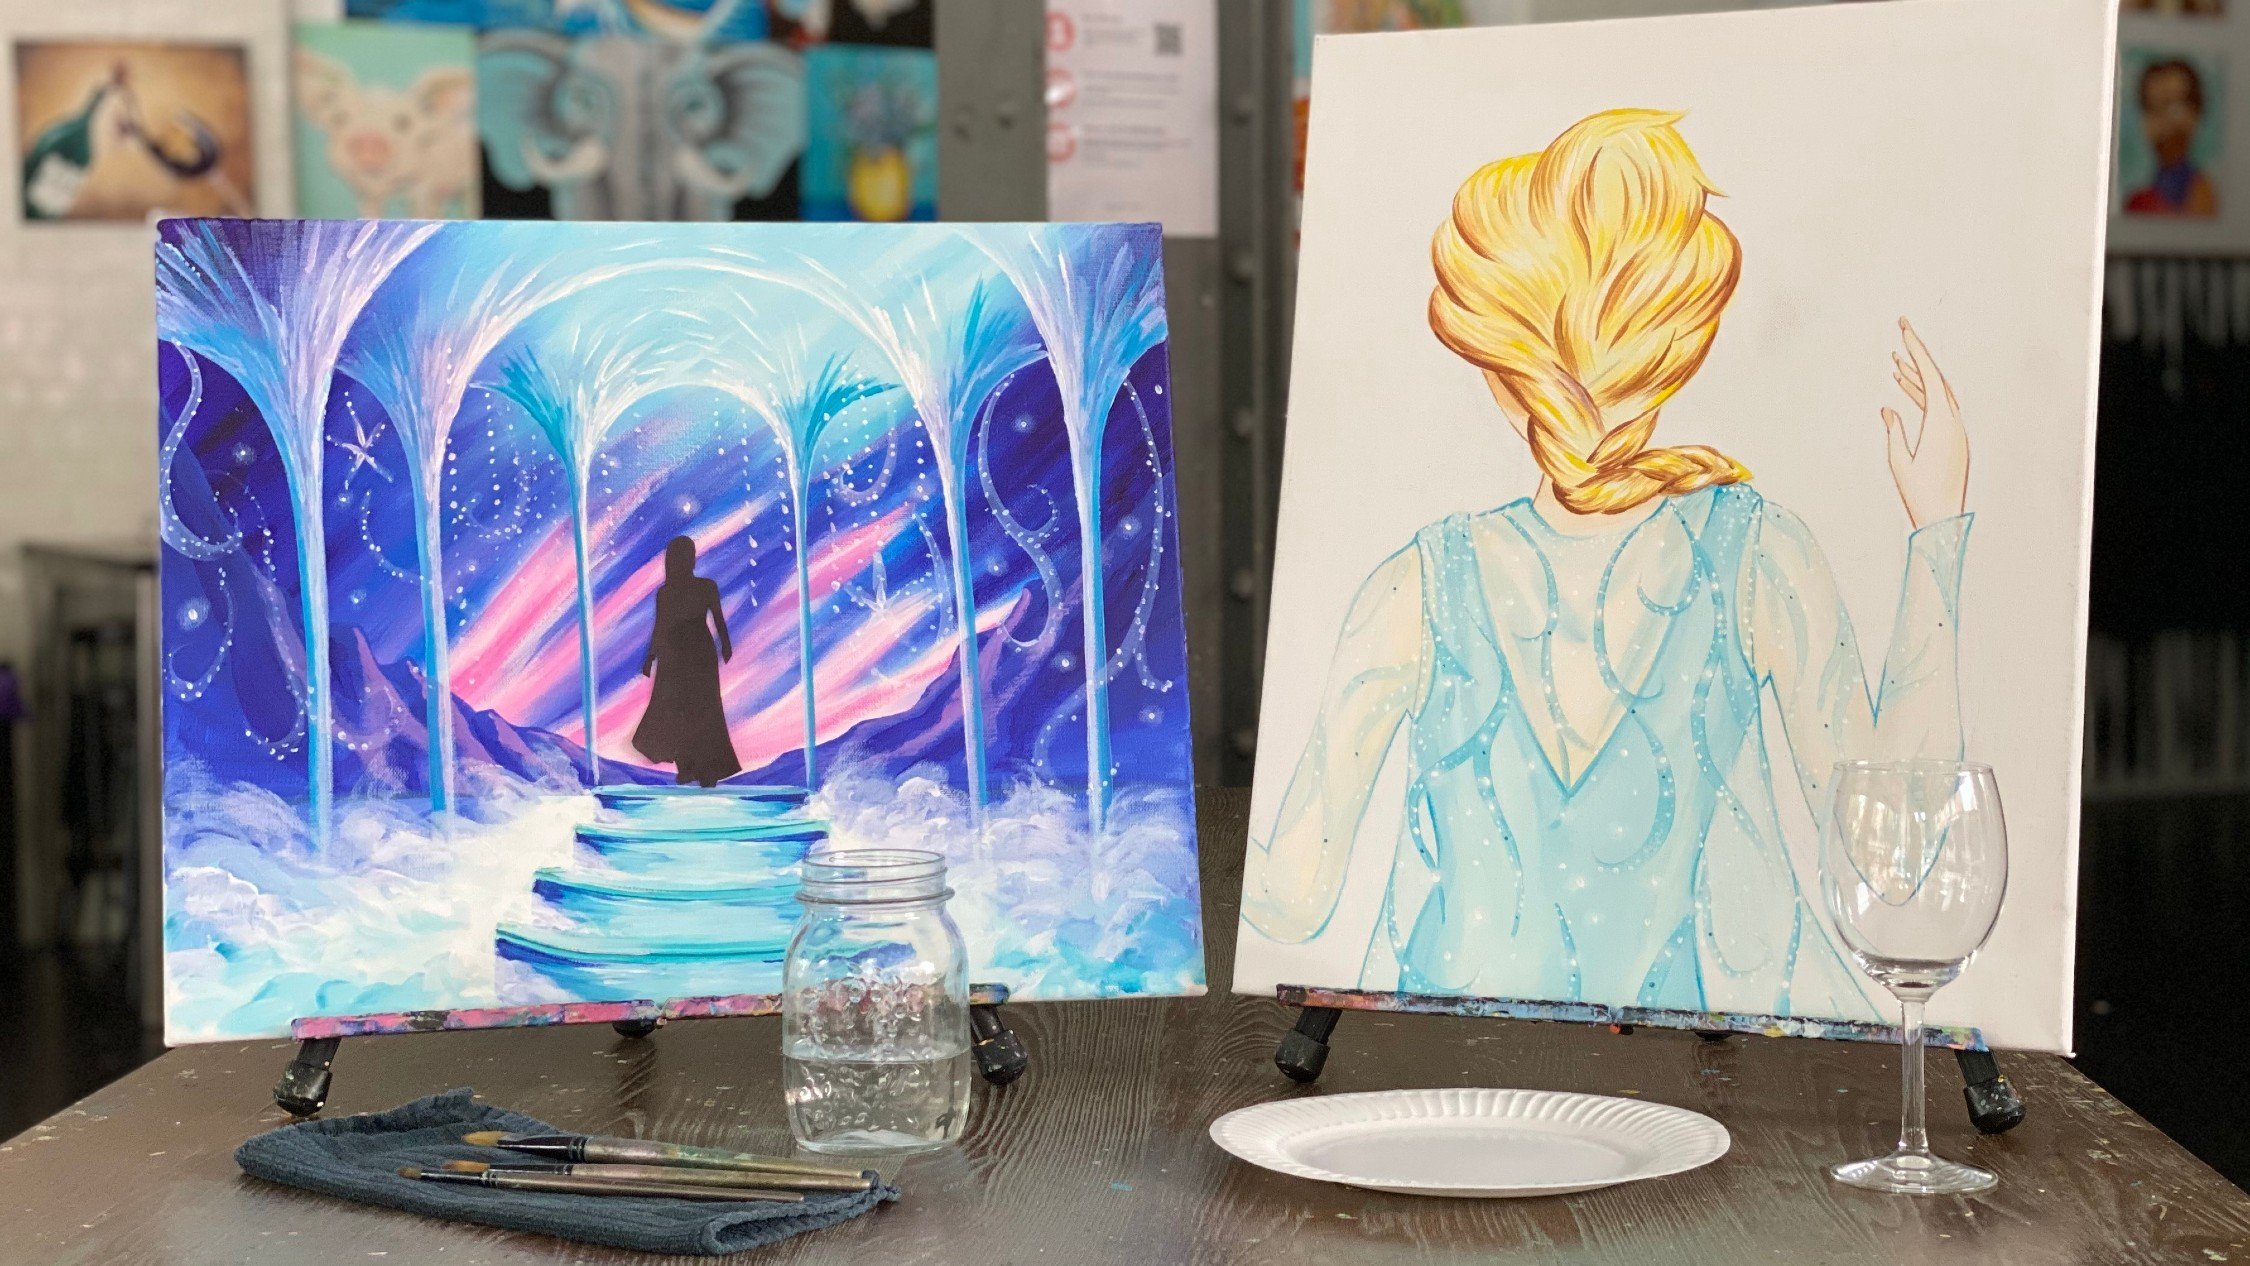 Two canvases with Frozen the Musical scenes painted